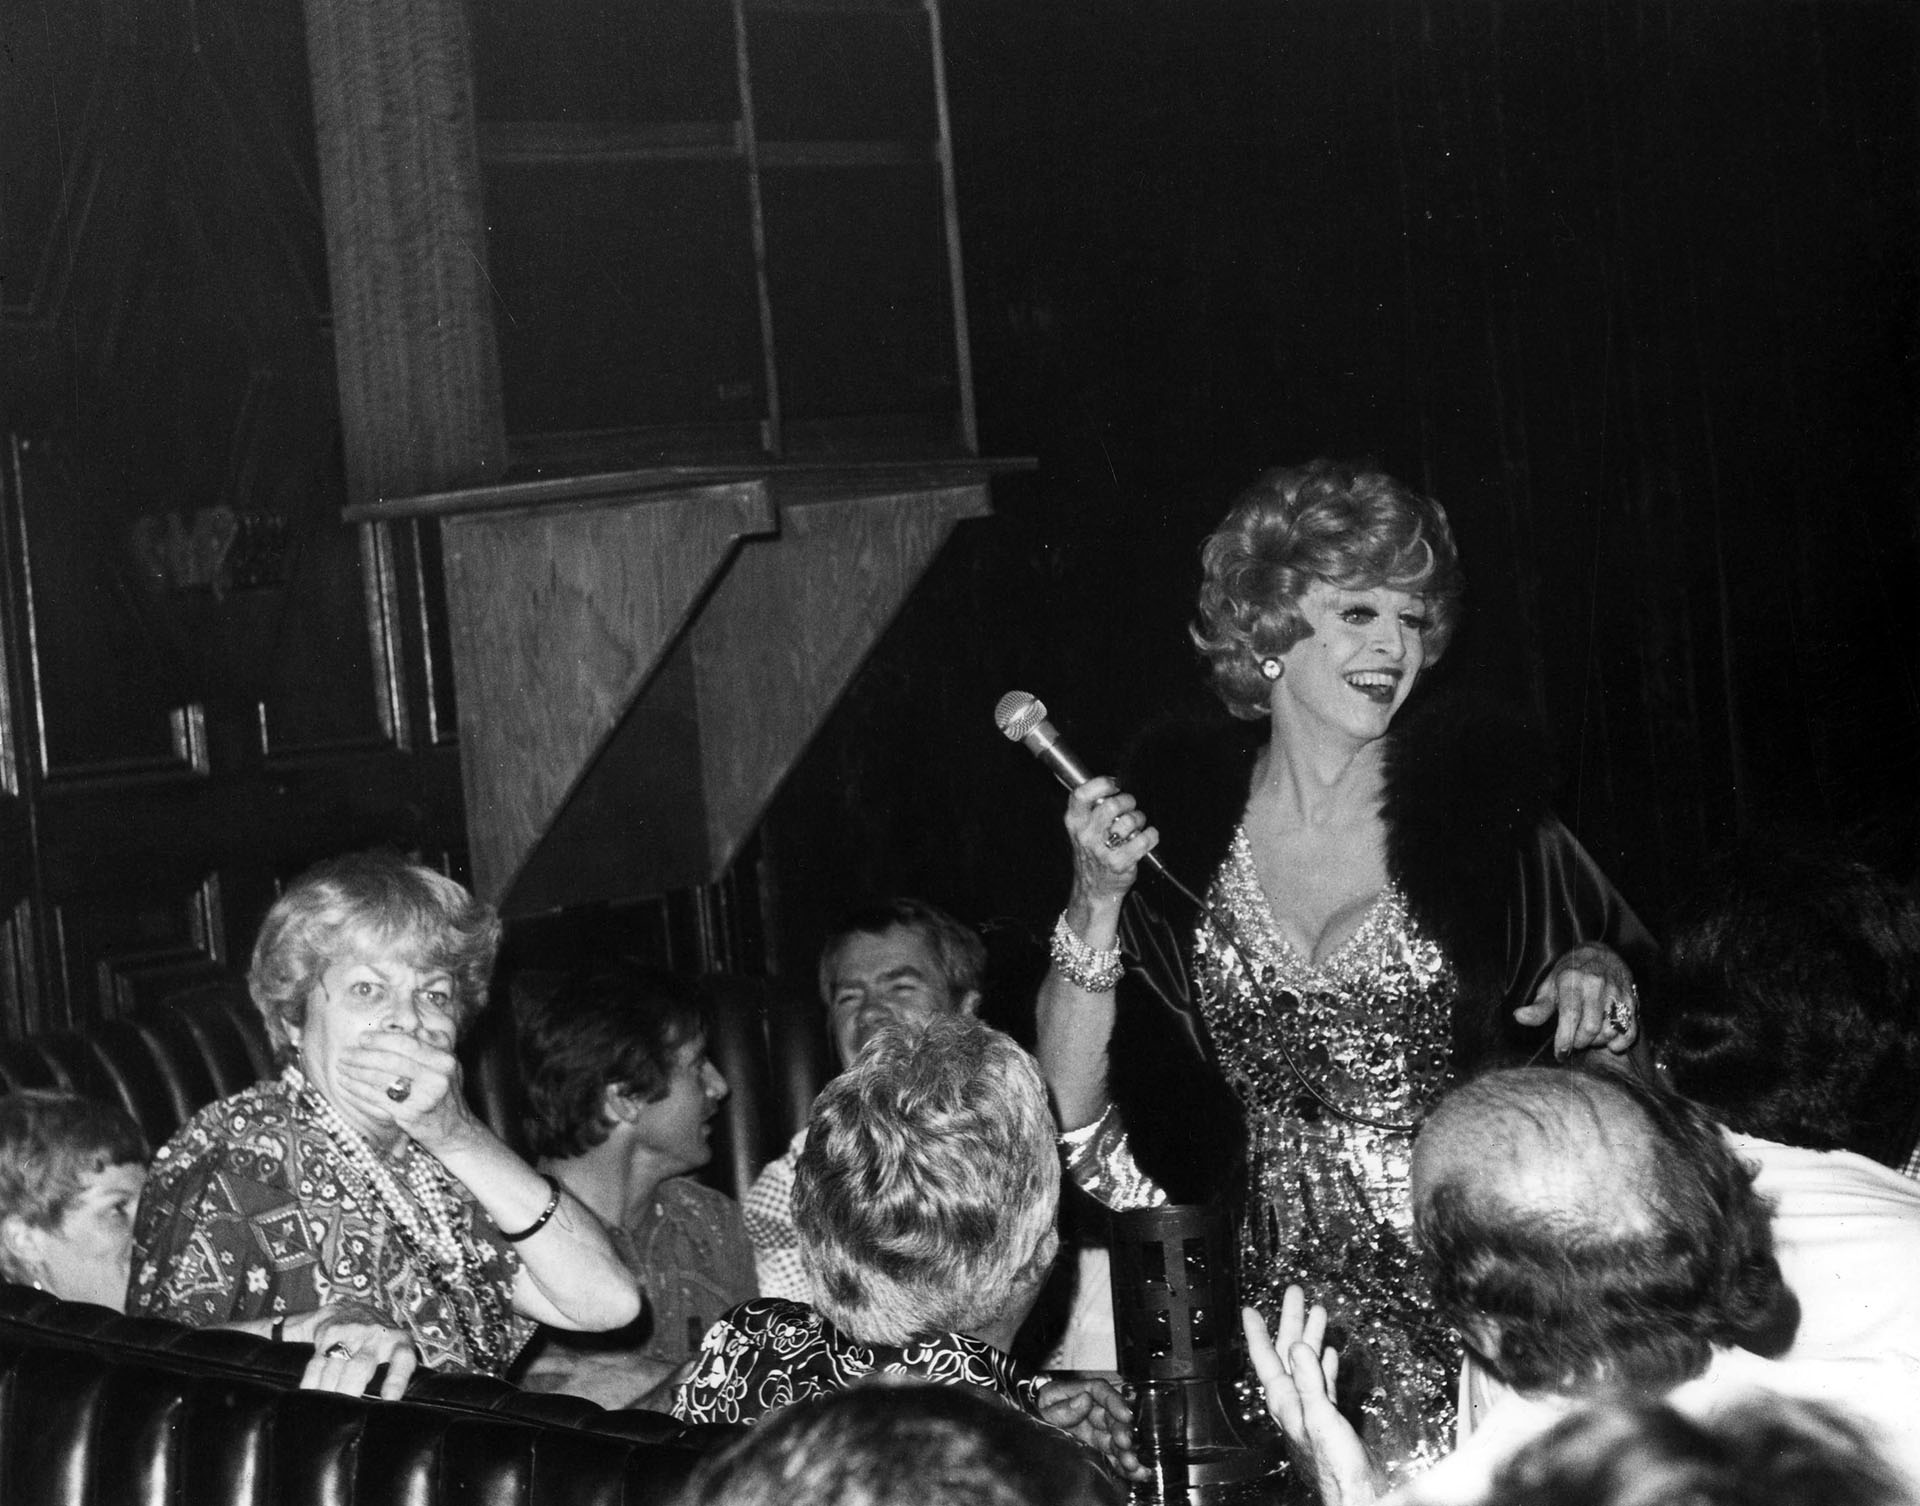 Charles Pierce performs as Martha Raye at the Cabaret, scandalizing the real Martha Raye, 1975